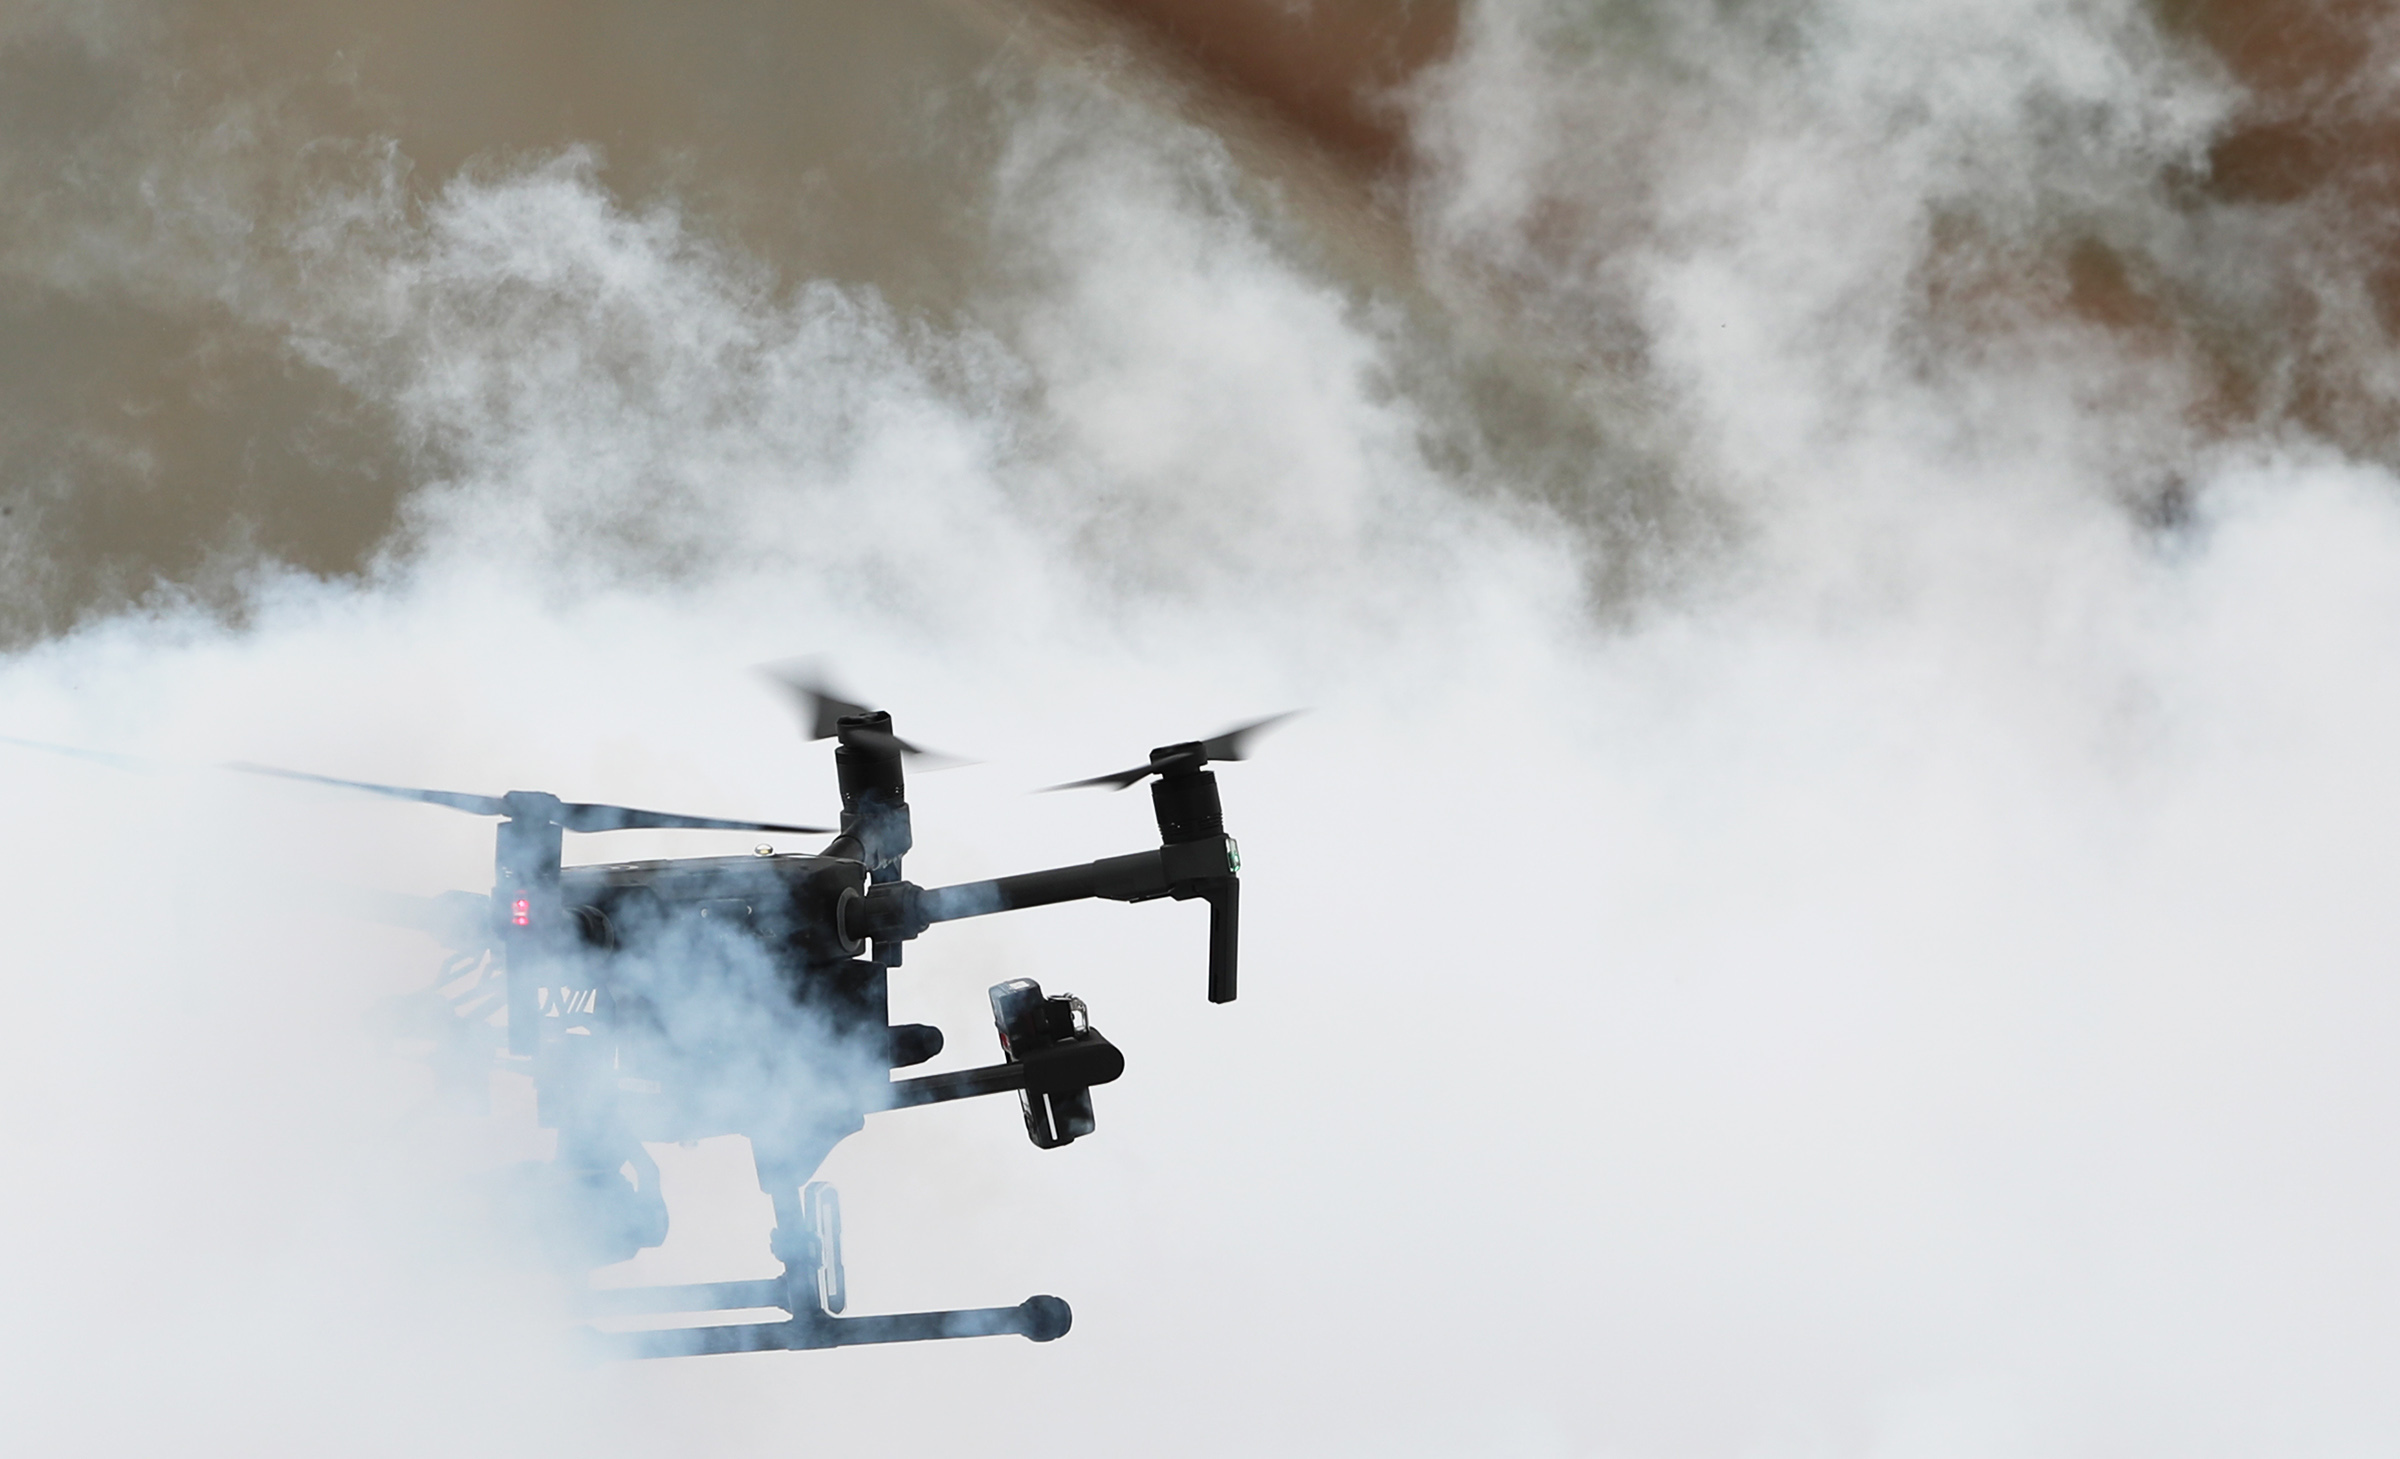 A drone hovers in a liquid nitrogen cloud during a demonstration as Deseret UAS group hosts a two day workshop on deploying drones in hazardous materials situations for emergency responders at the Tekoi Test Range on the Goshute Skull Valley Reservation on Tuesday, June 25, 2019.